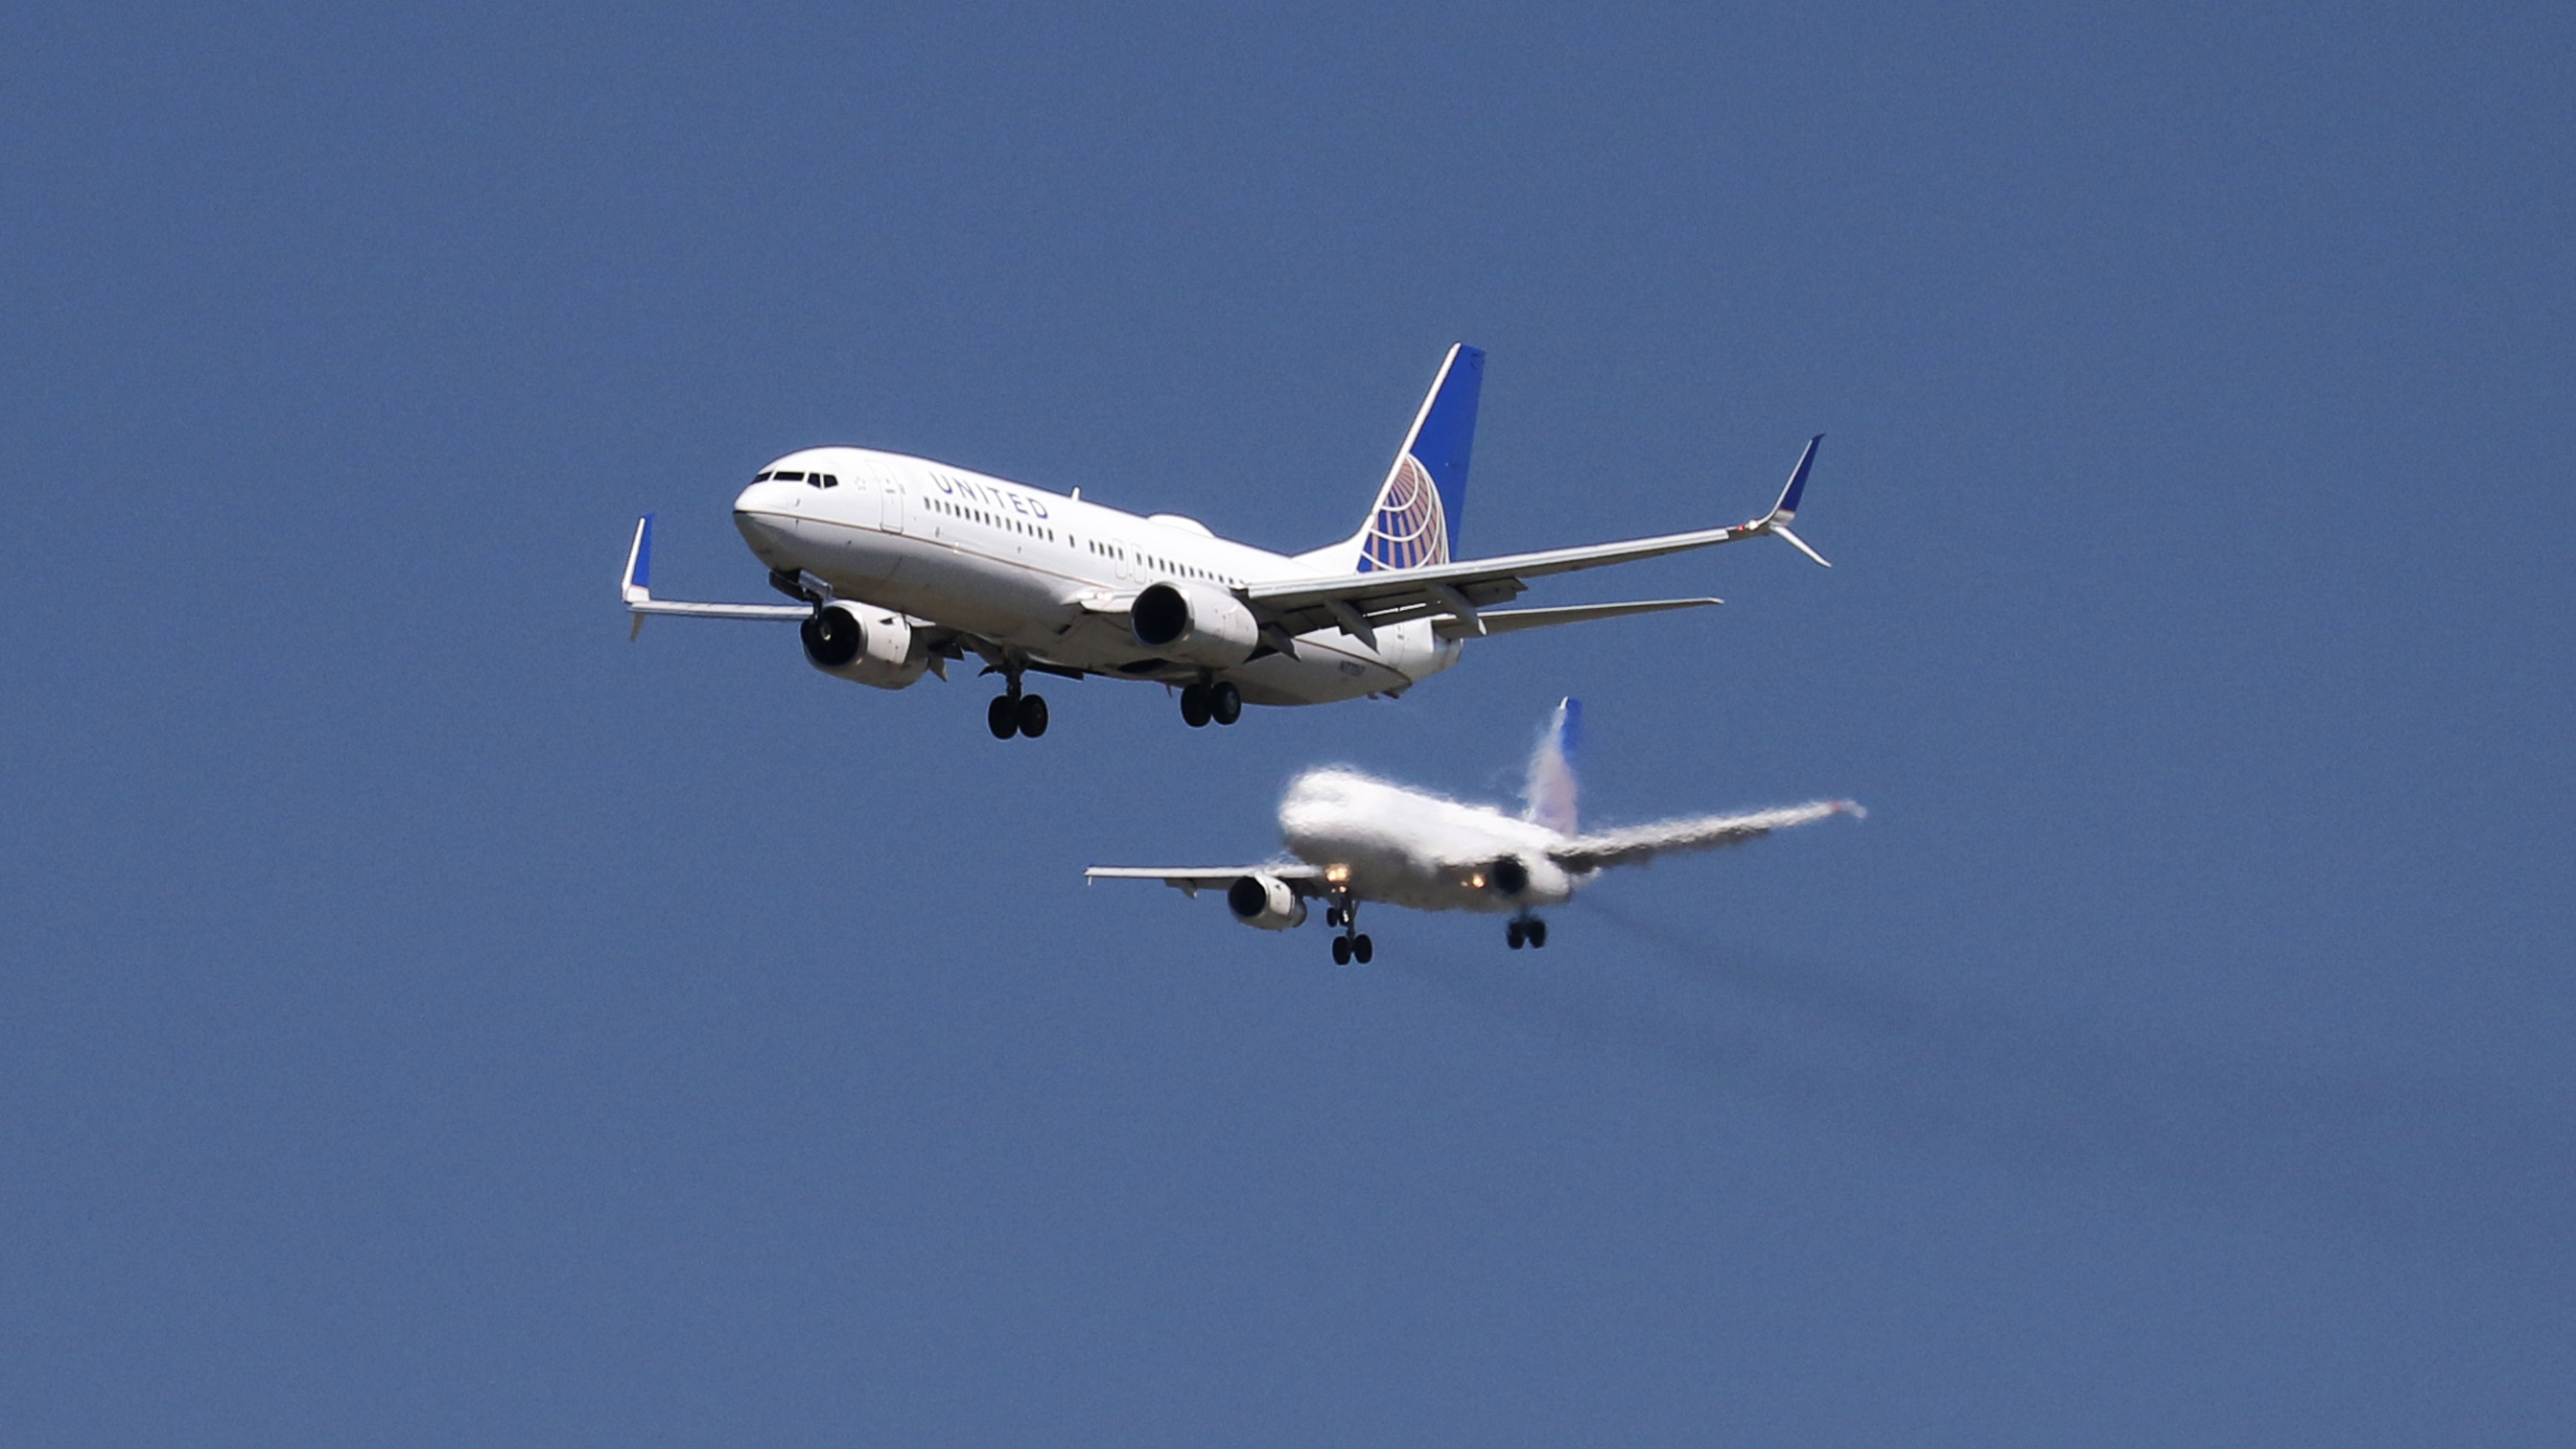 A United Airlines Boeing 737-800 and United Airlines A320 Airbus on seen approach to San Francisco International Airport, San Francisco, California, April 14, 2015.